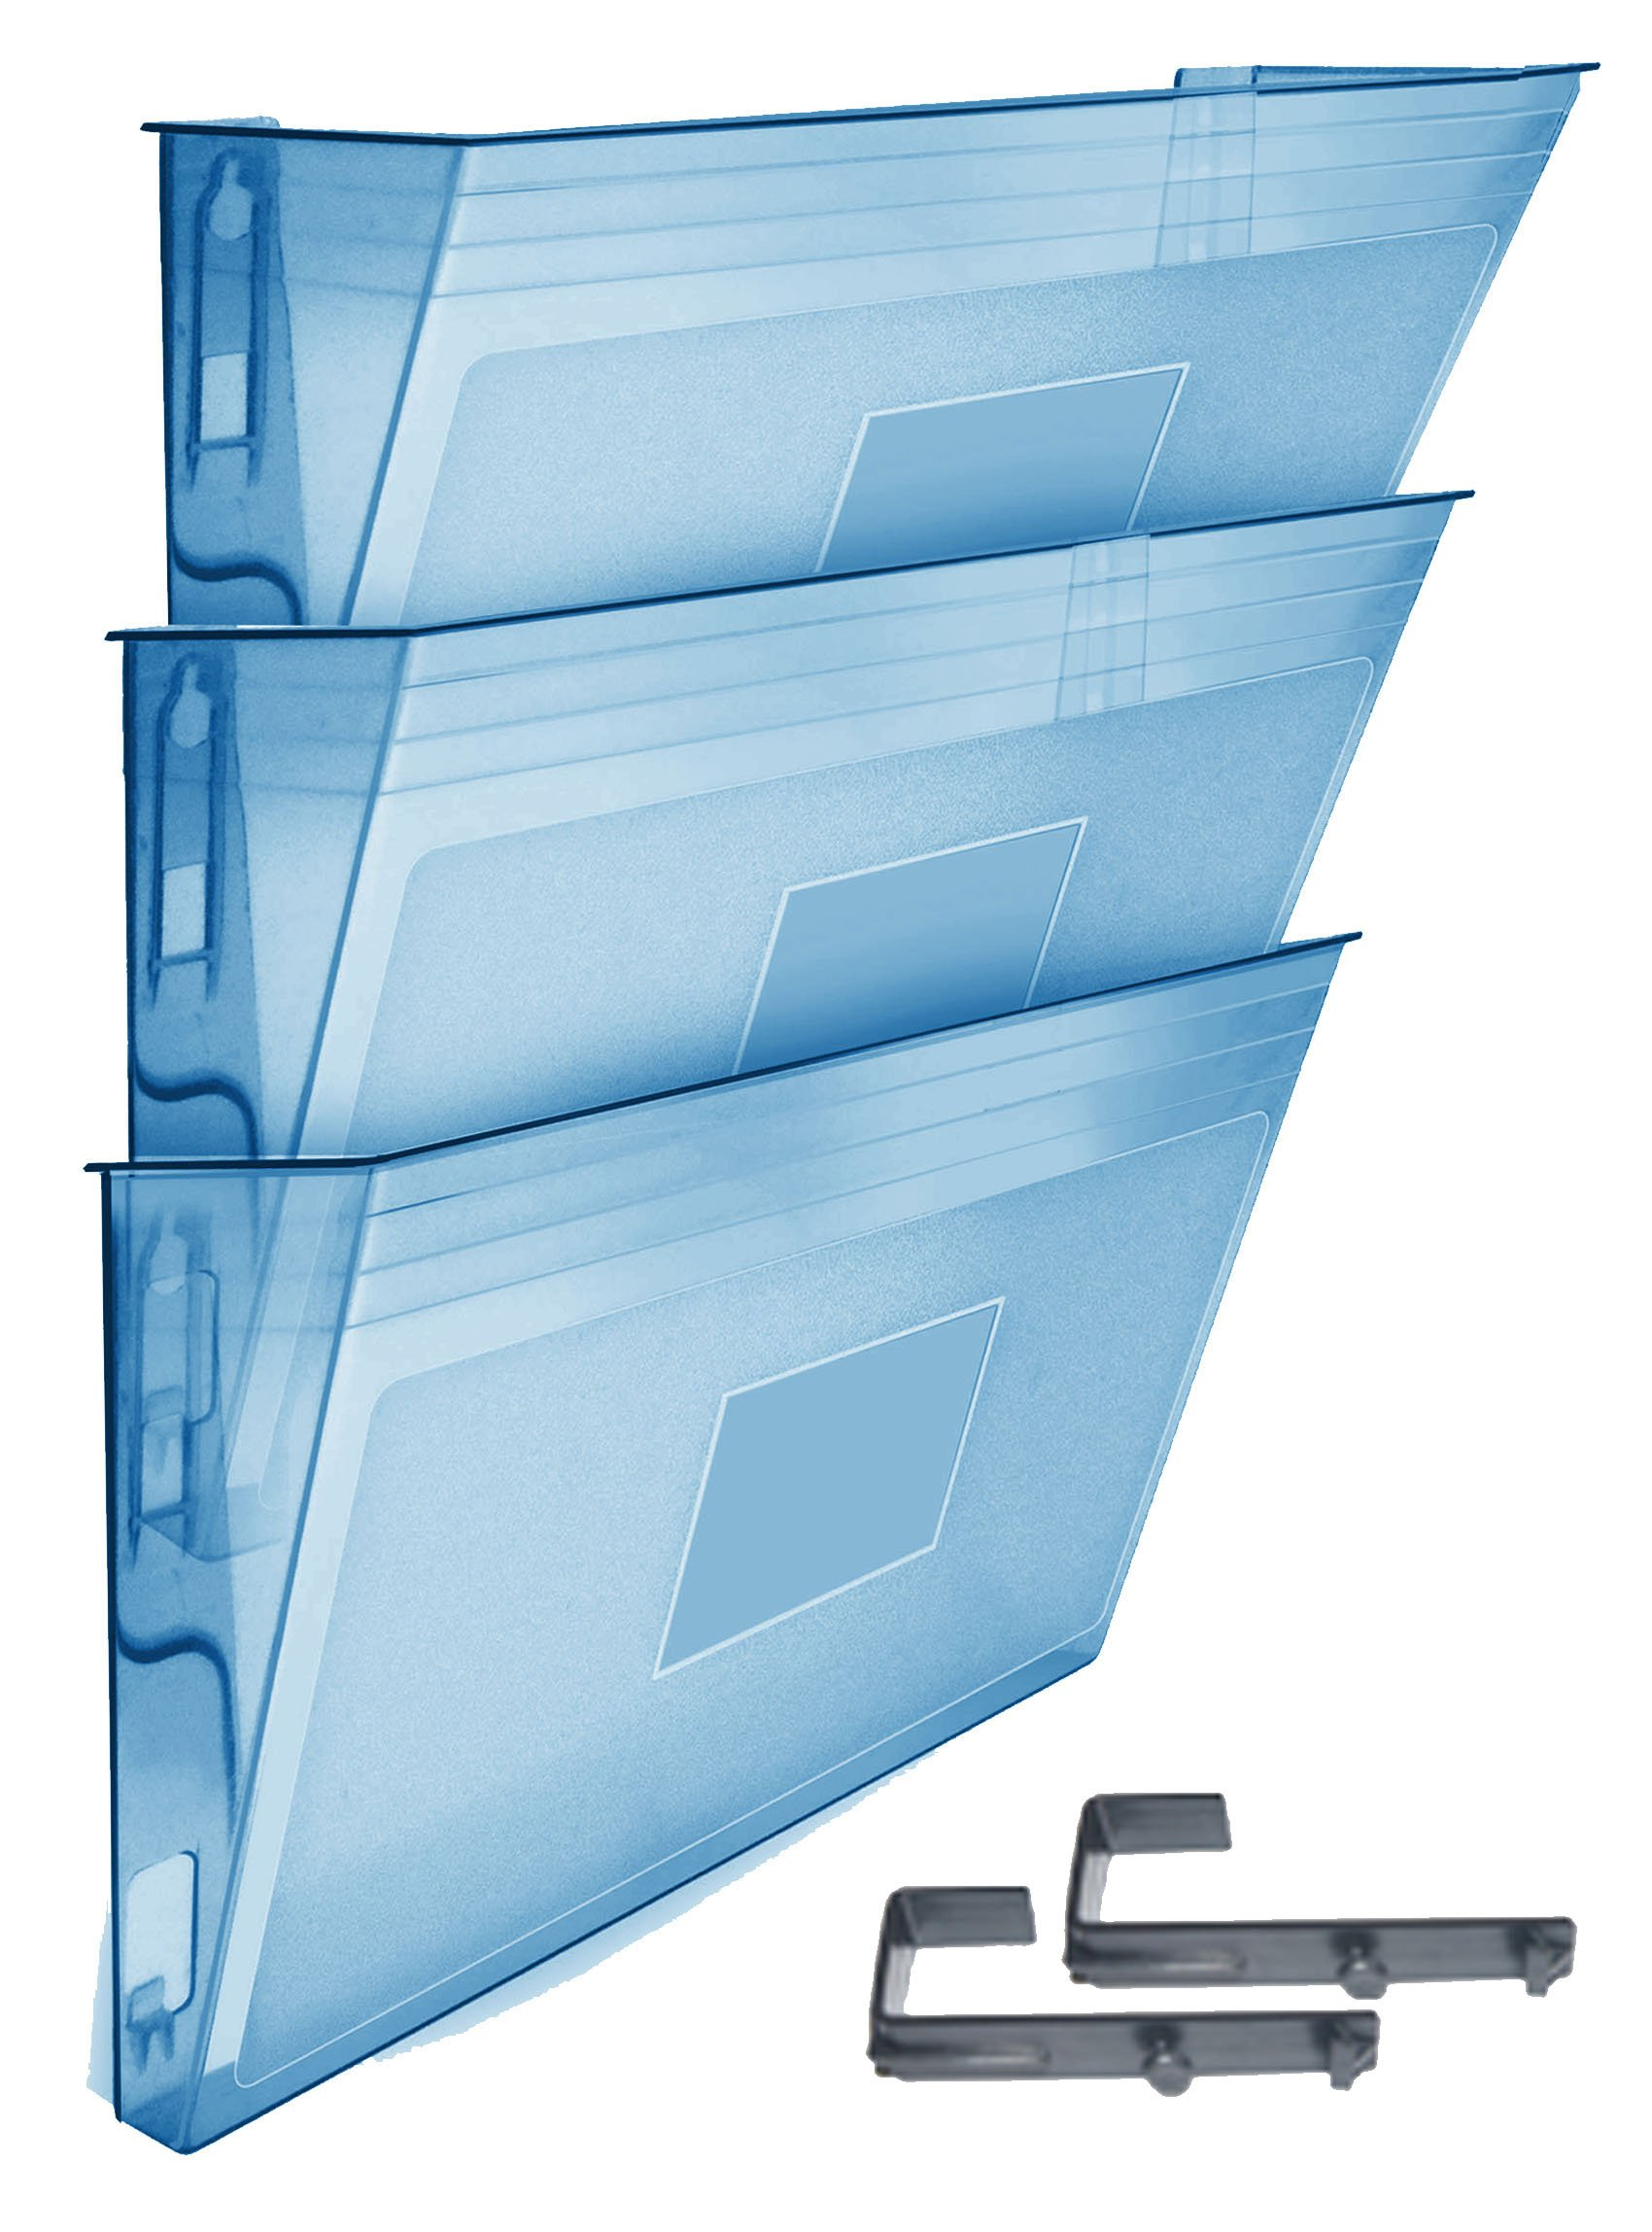 Acrimet Wall-mounted Modular File Holder (3 - Pack) (Clear Blue Color)